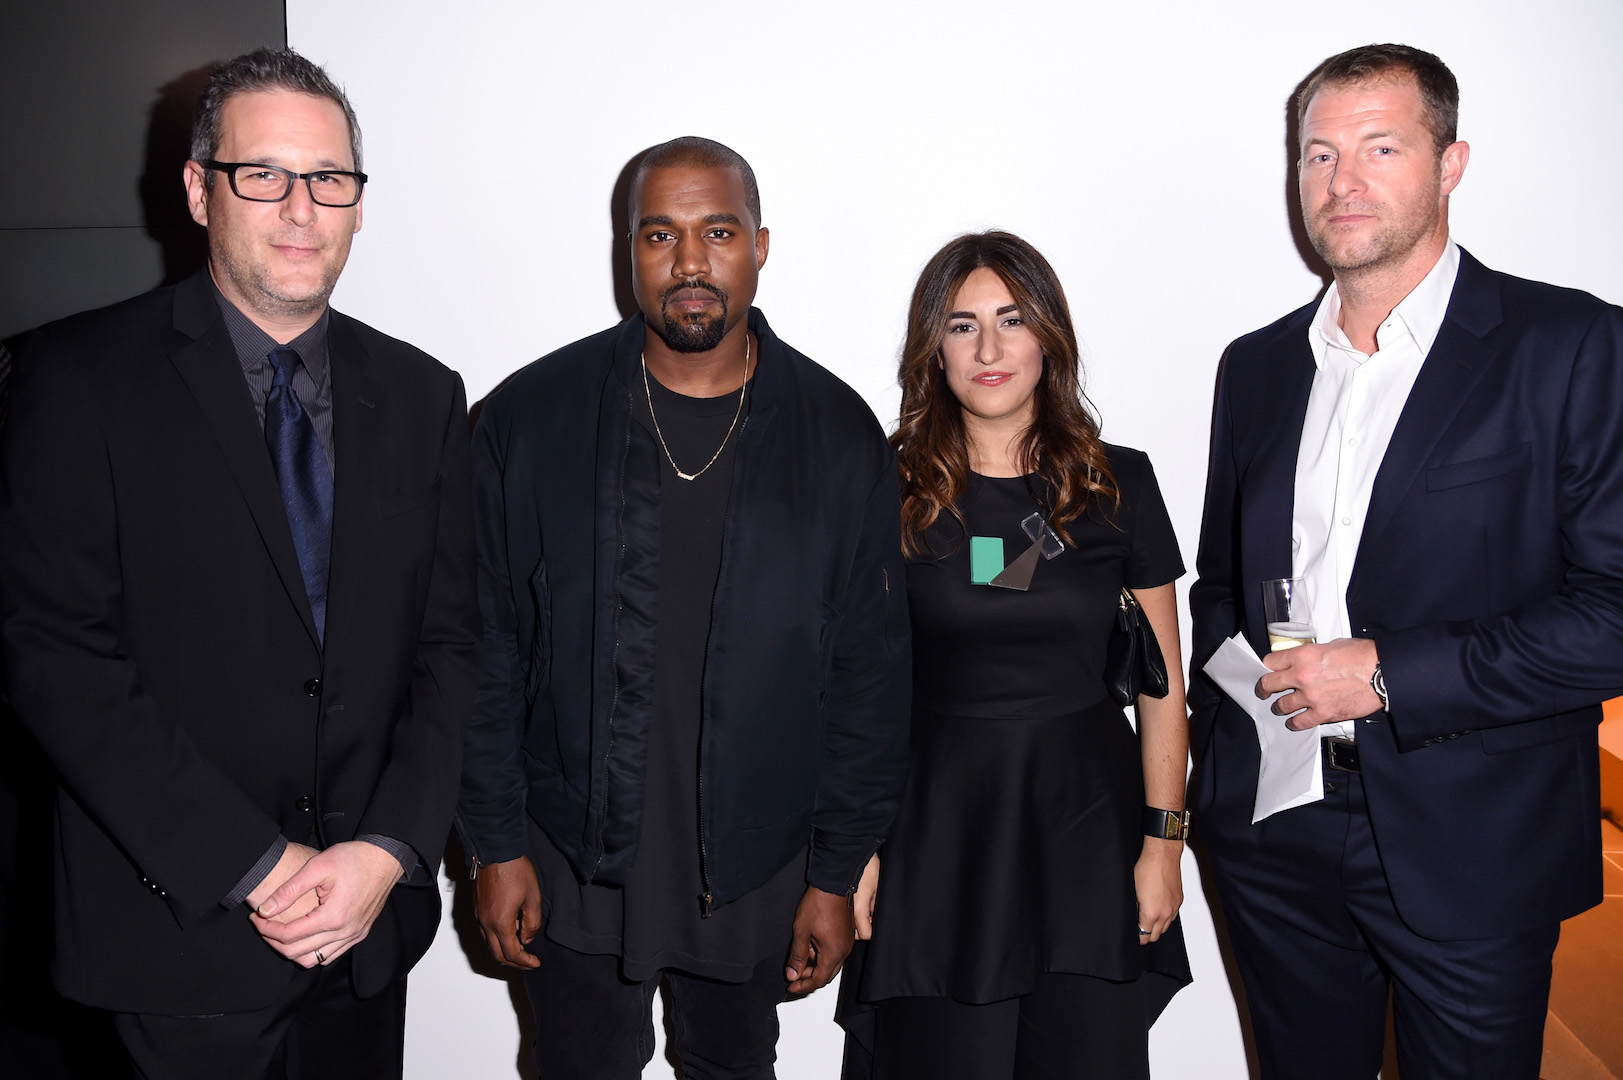 Mandatory Credit: Photo by Stephen Lovekin/Variety/REX Shutterstock (5470209bs) Jon Wexler, Kanye West, Rachel Muscat, and Arthur Hoeld Footwear News Achievement Awards, Arrivals, New York, America - 02 Dec 2015